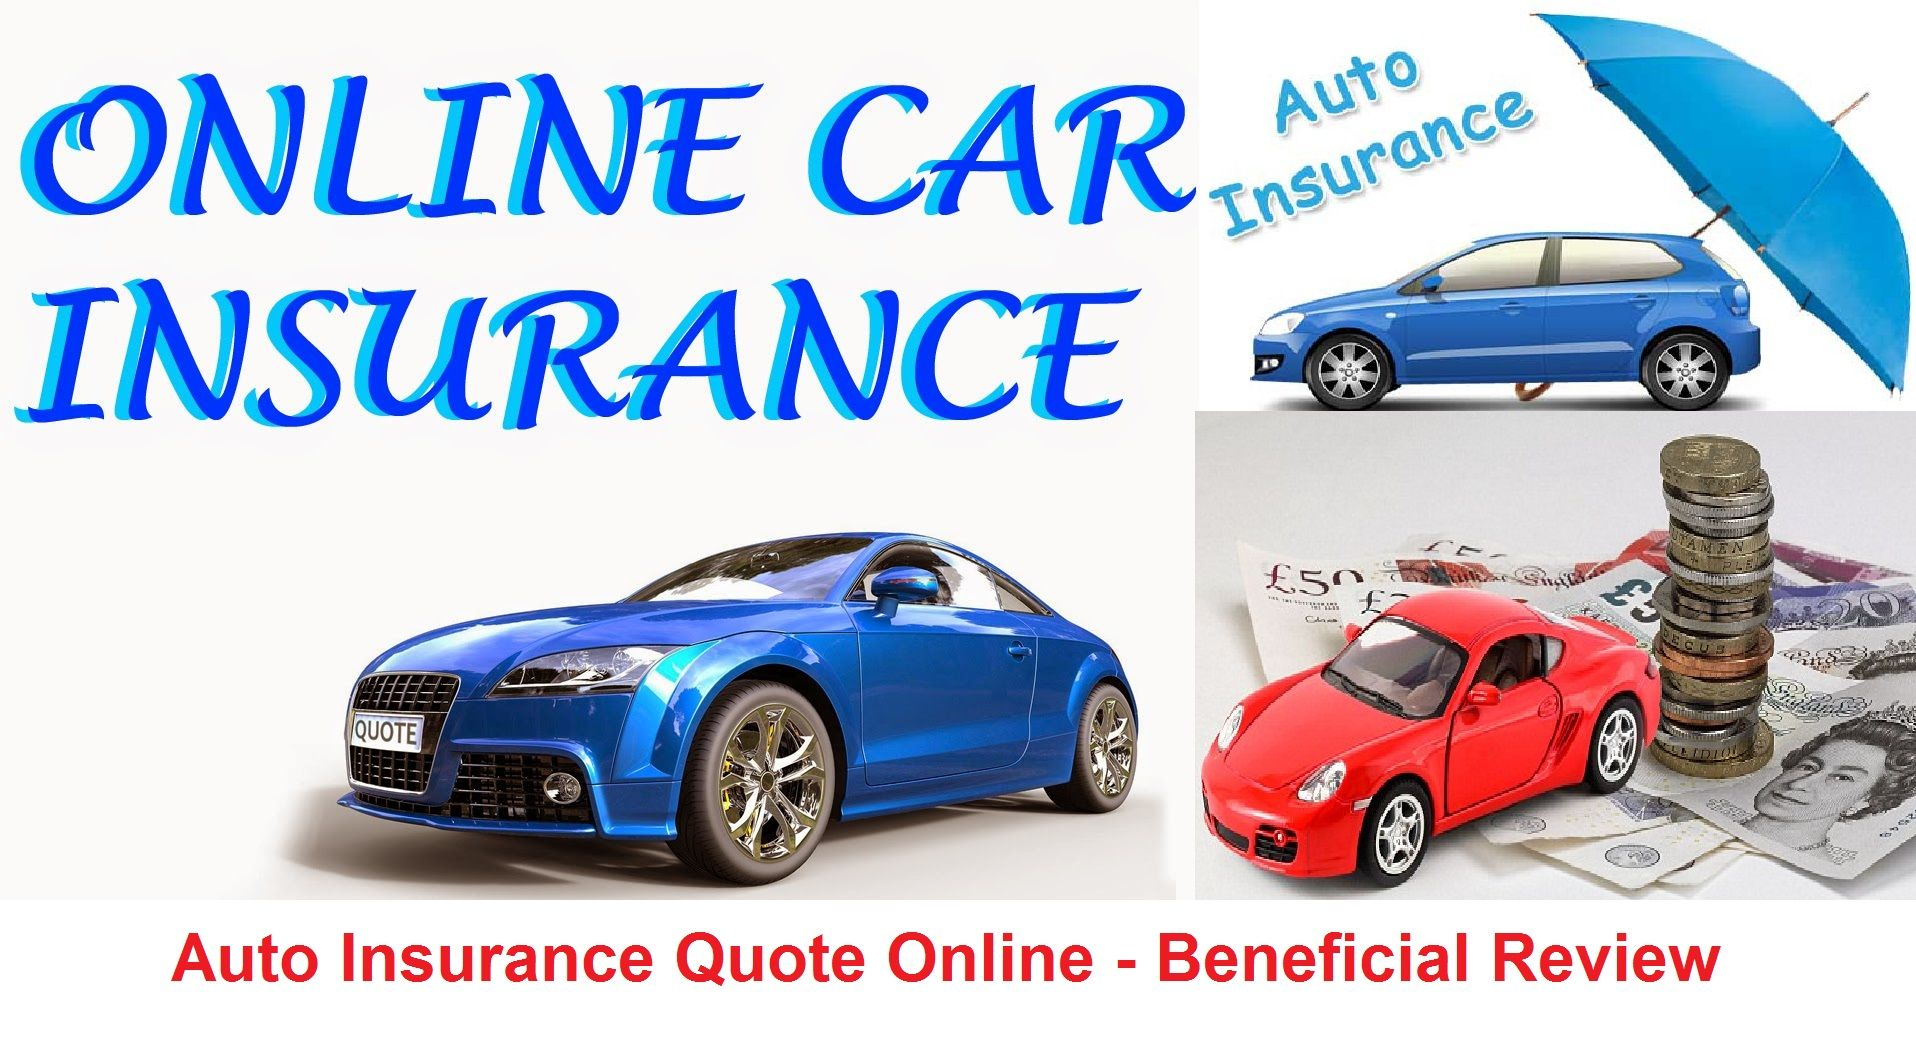 Auto Insurance Quote Online - Beneficial Review! (With ...